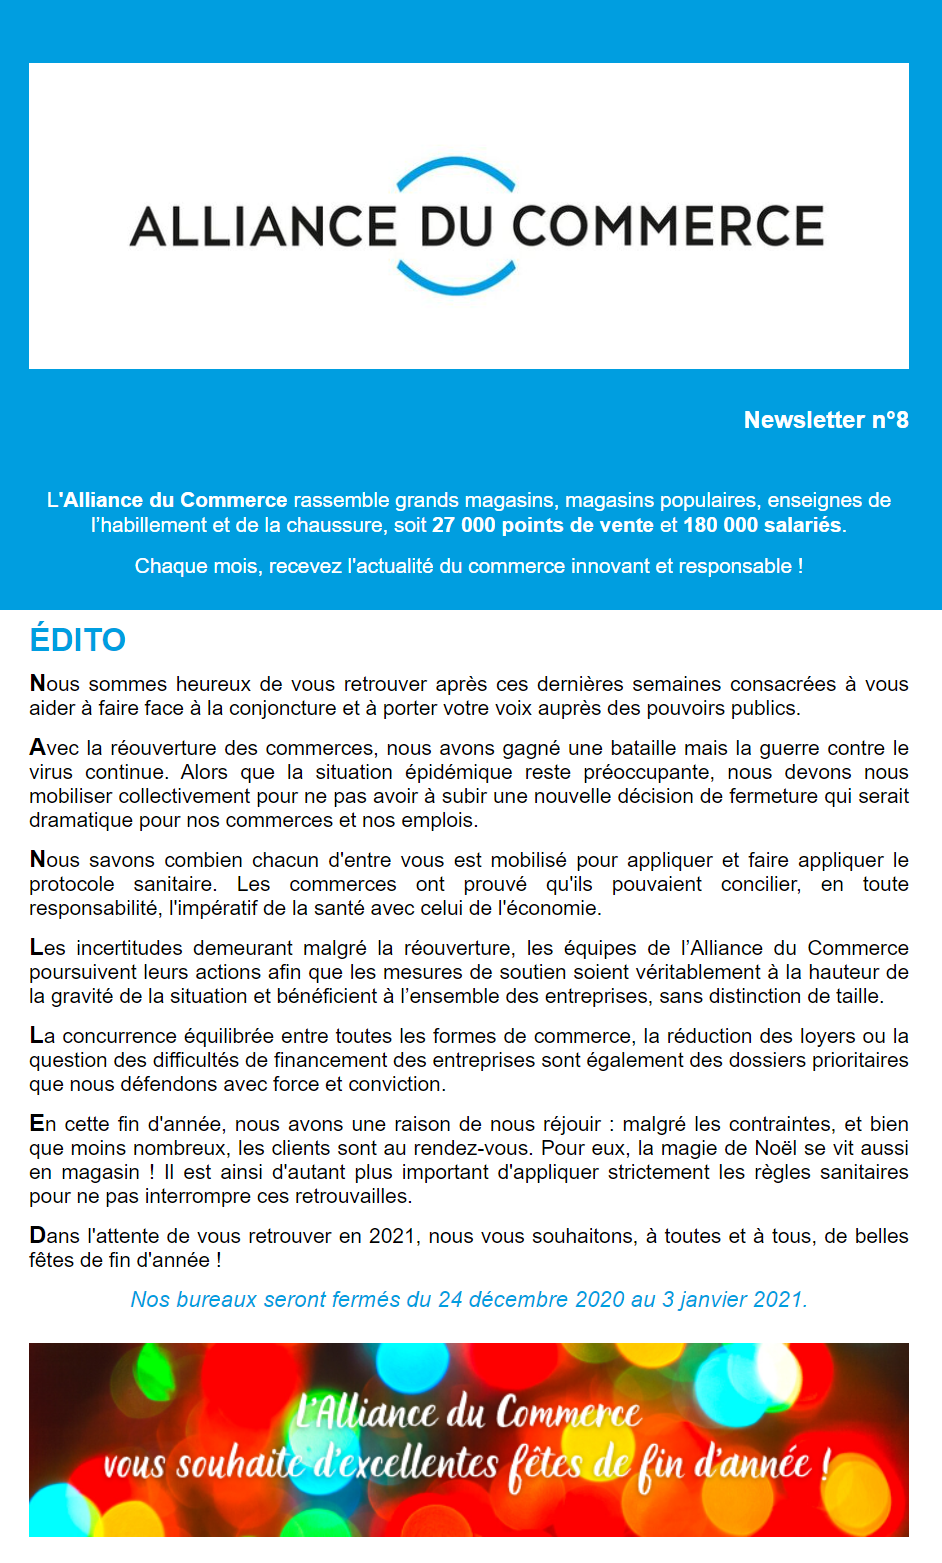 La newsletter de l'Alliance du Commerce